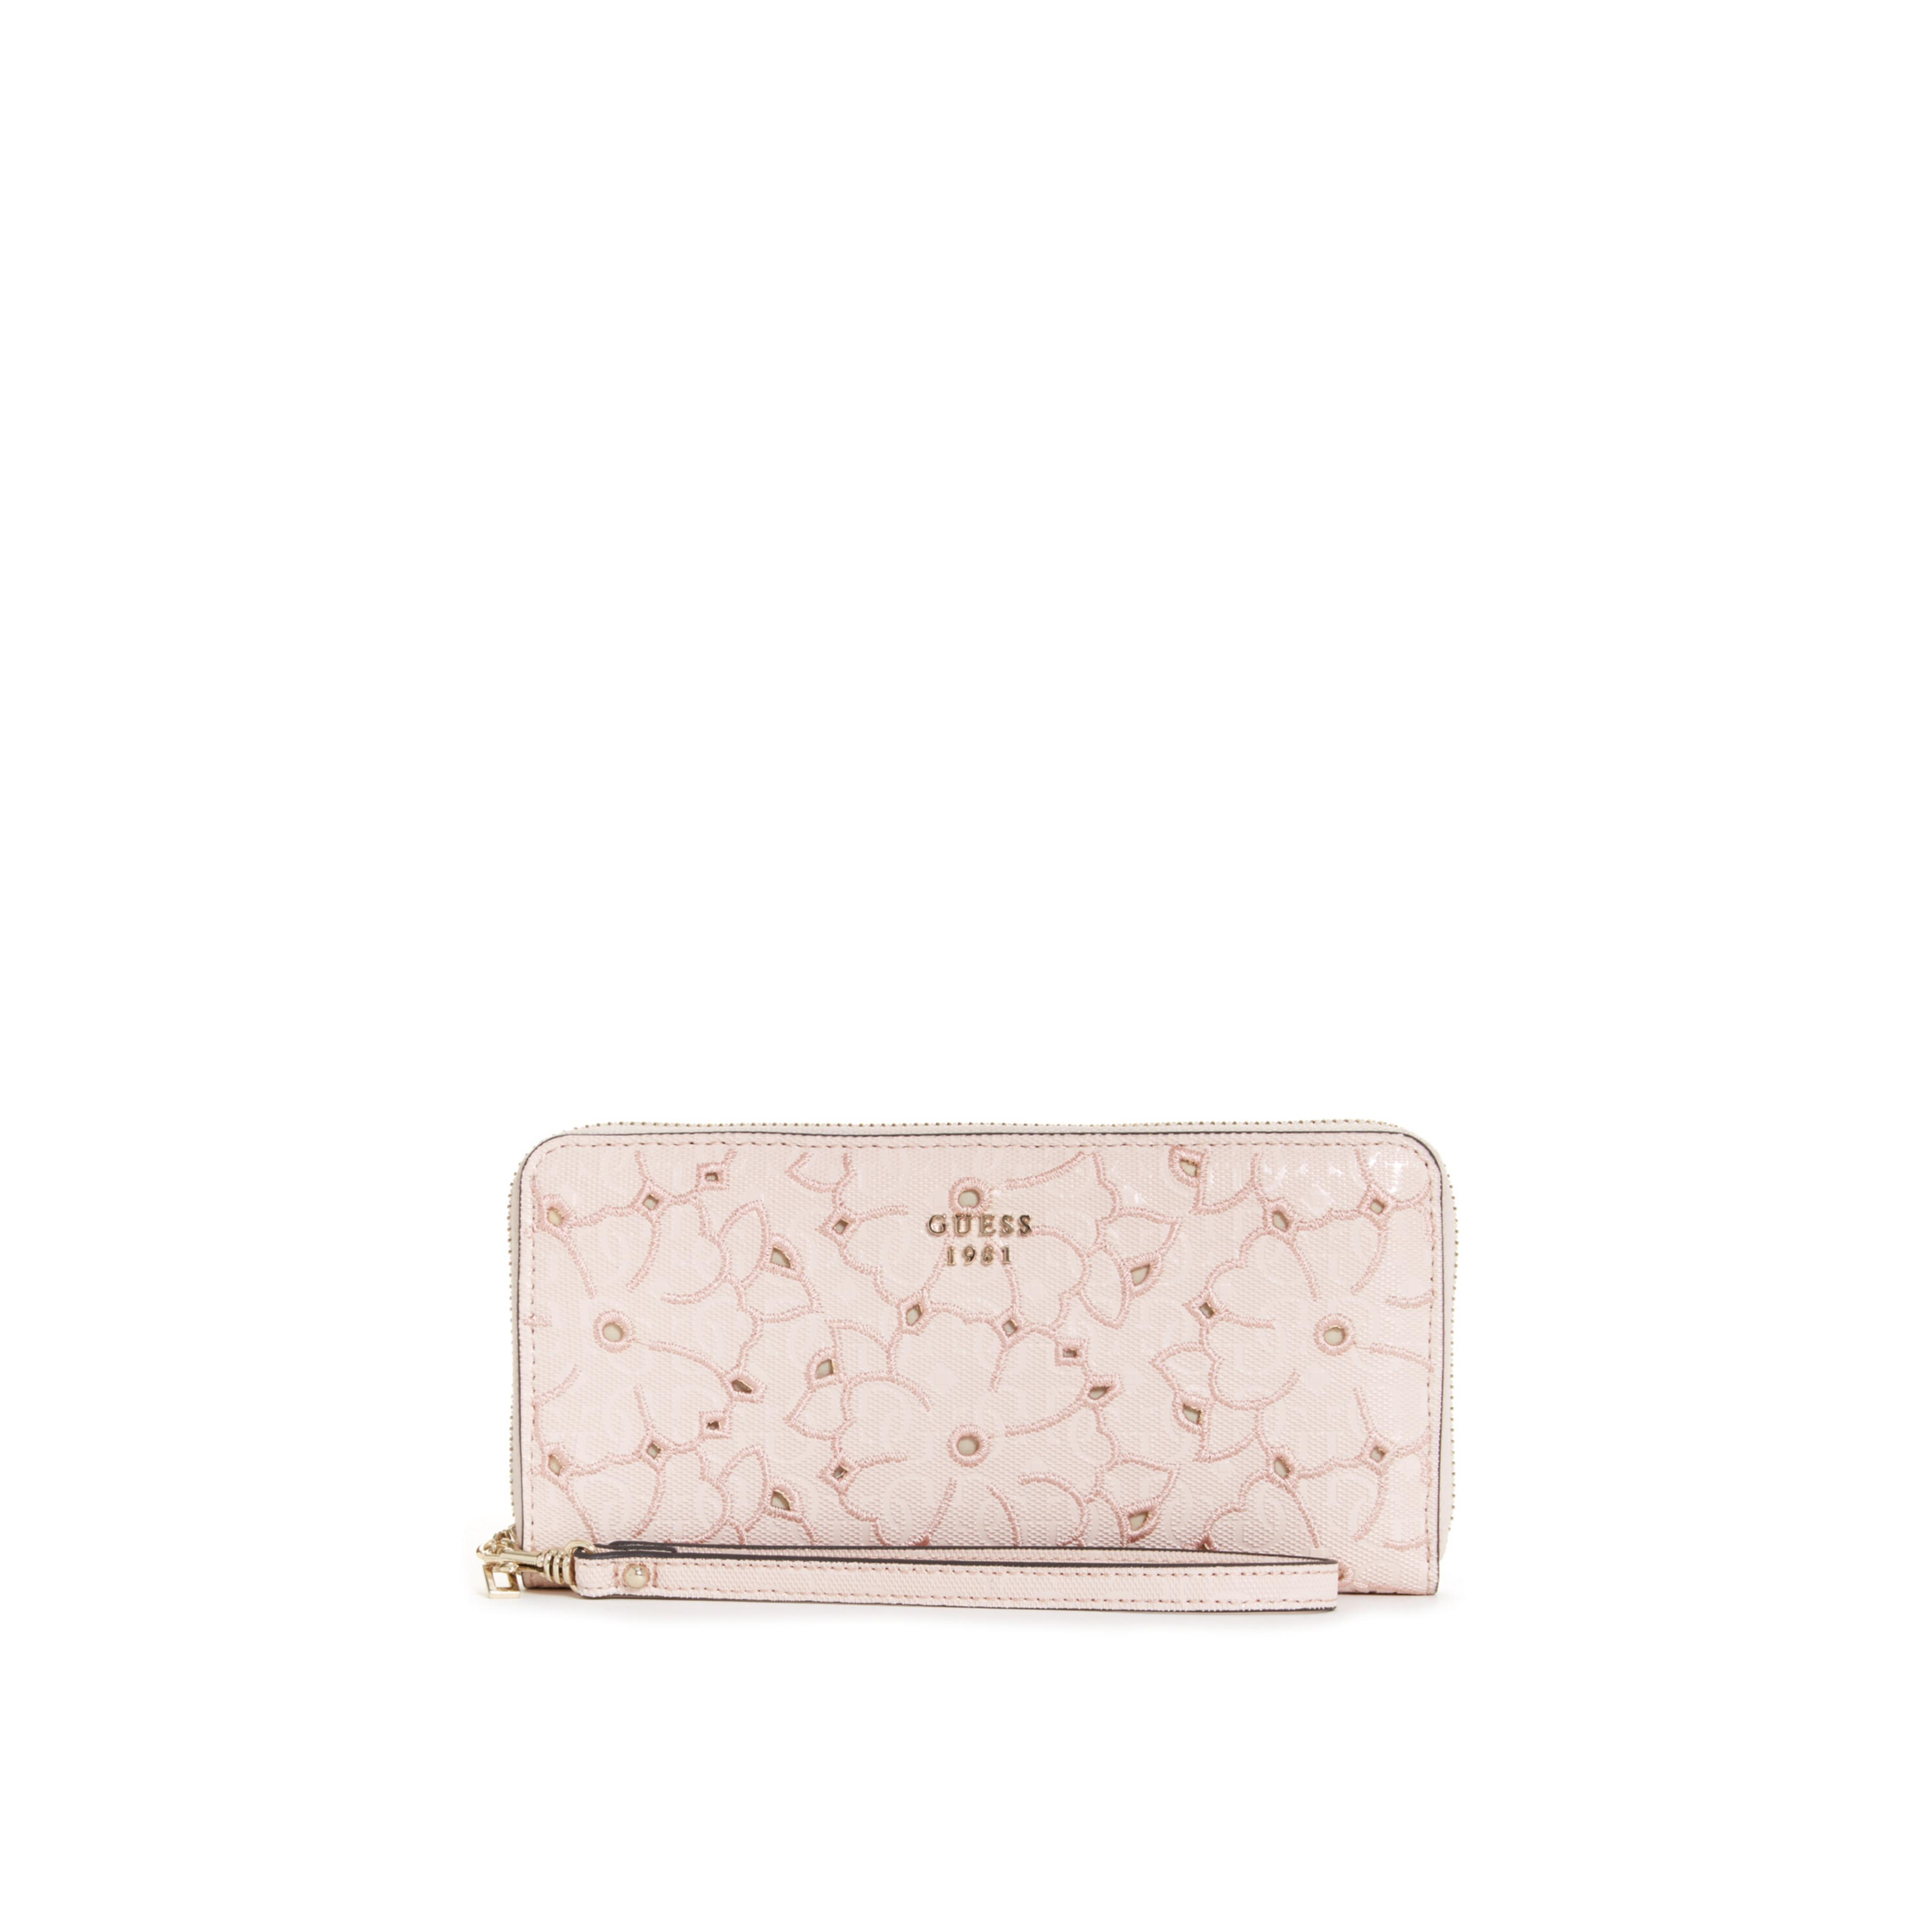 Leather Zip Around Wallet - Roses to Go by VIDA VIDA Where To Buy Order Cheap Price ftMTQFd